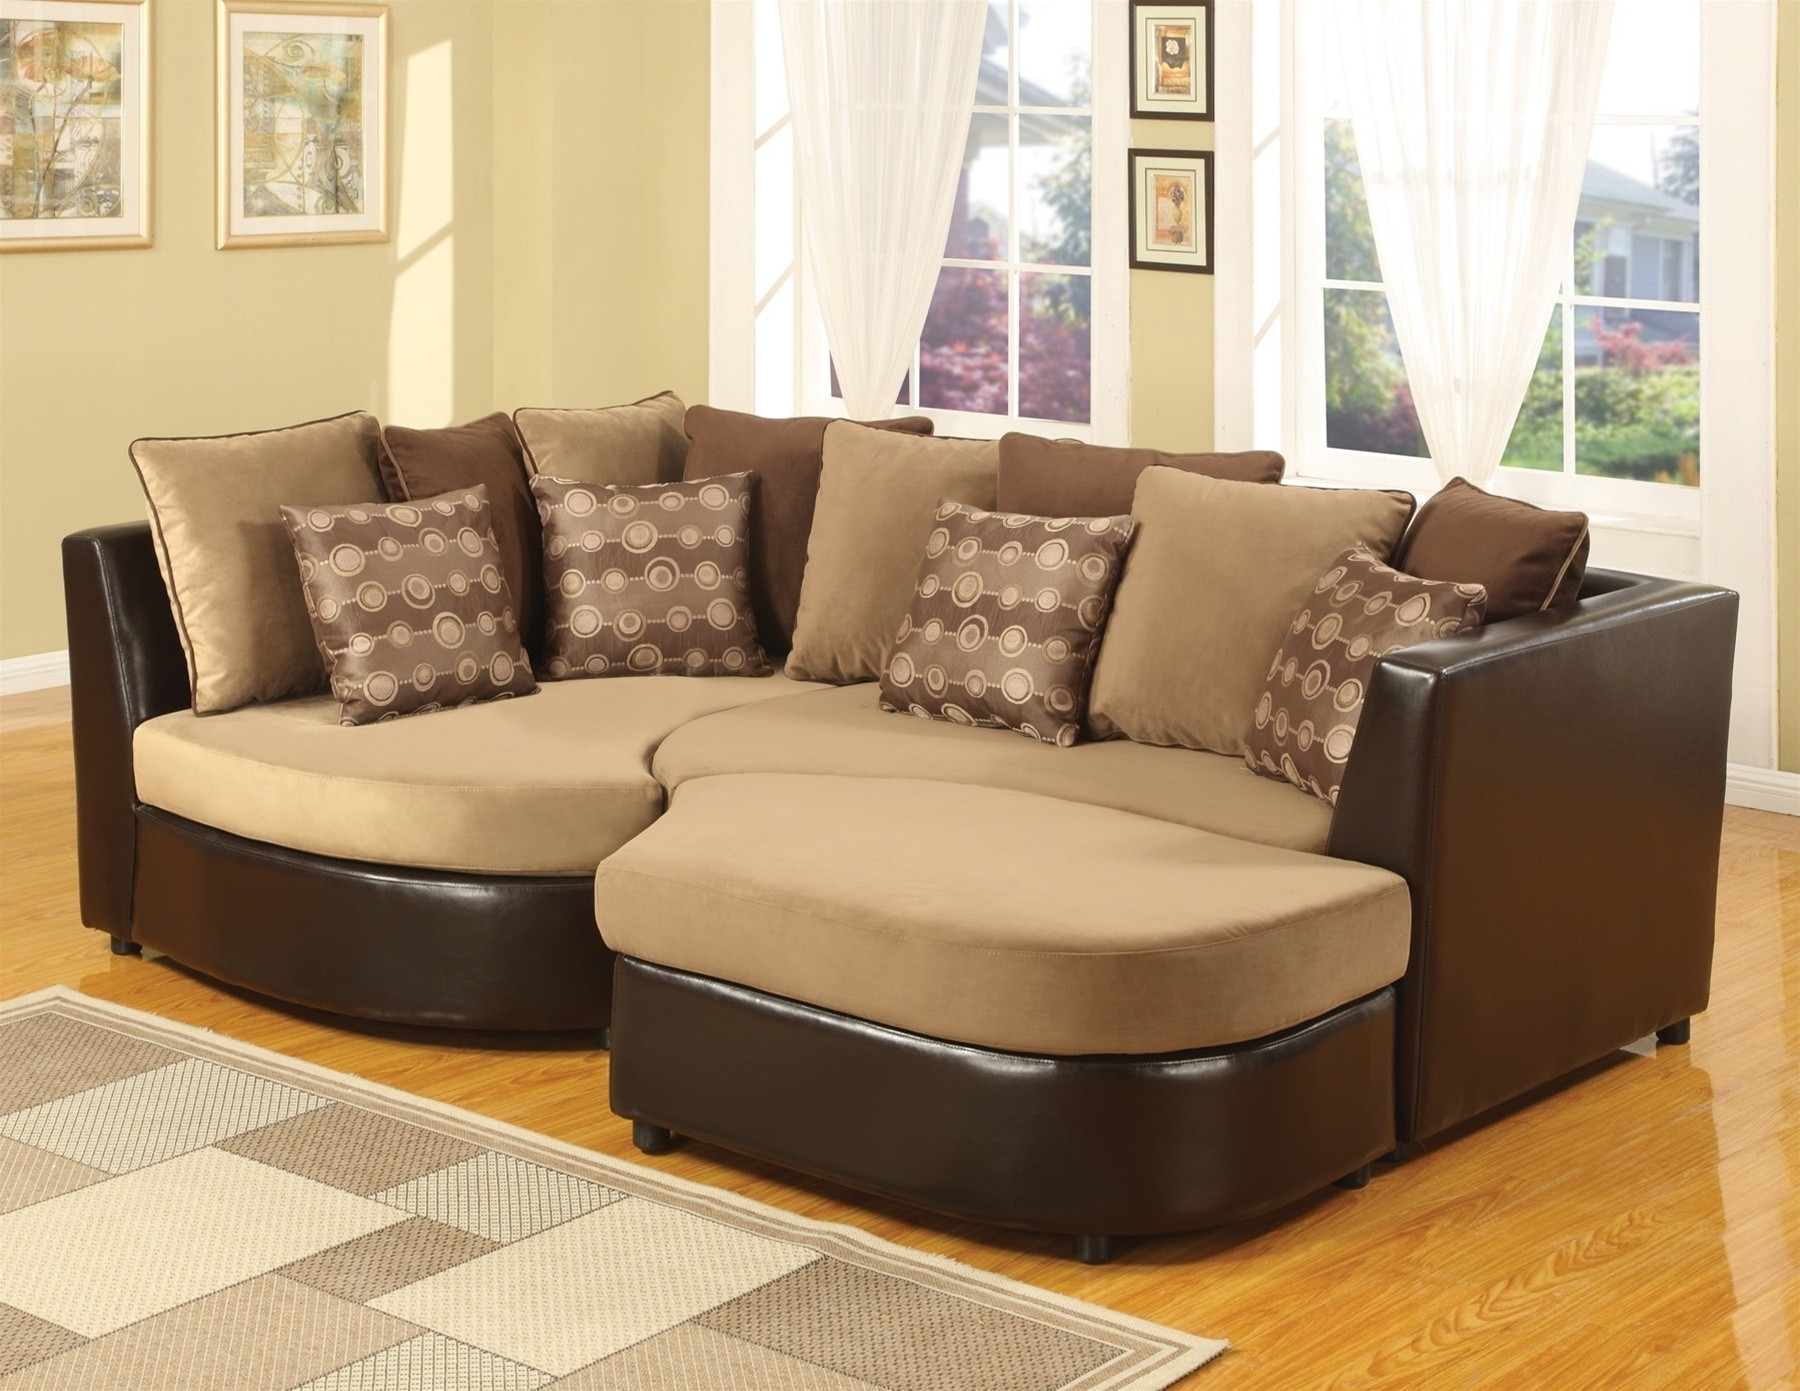 Inexpensive Sectional Sofas For Small Spaces Regarding Latest Living Room : Best Small Modern Sectionals Amazing Sectional Sofas (View 11 of 20)